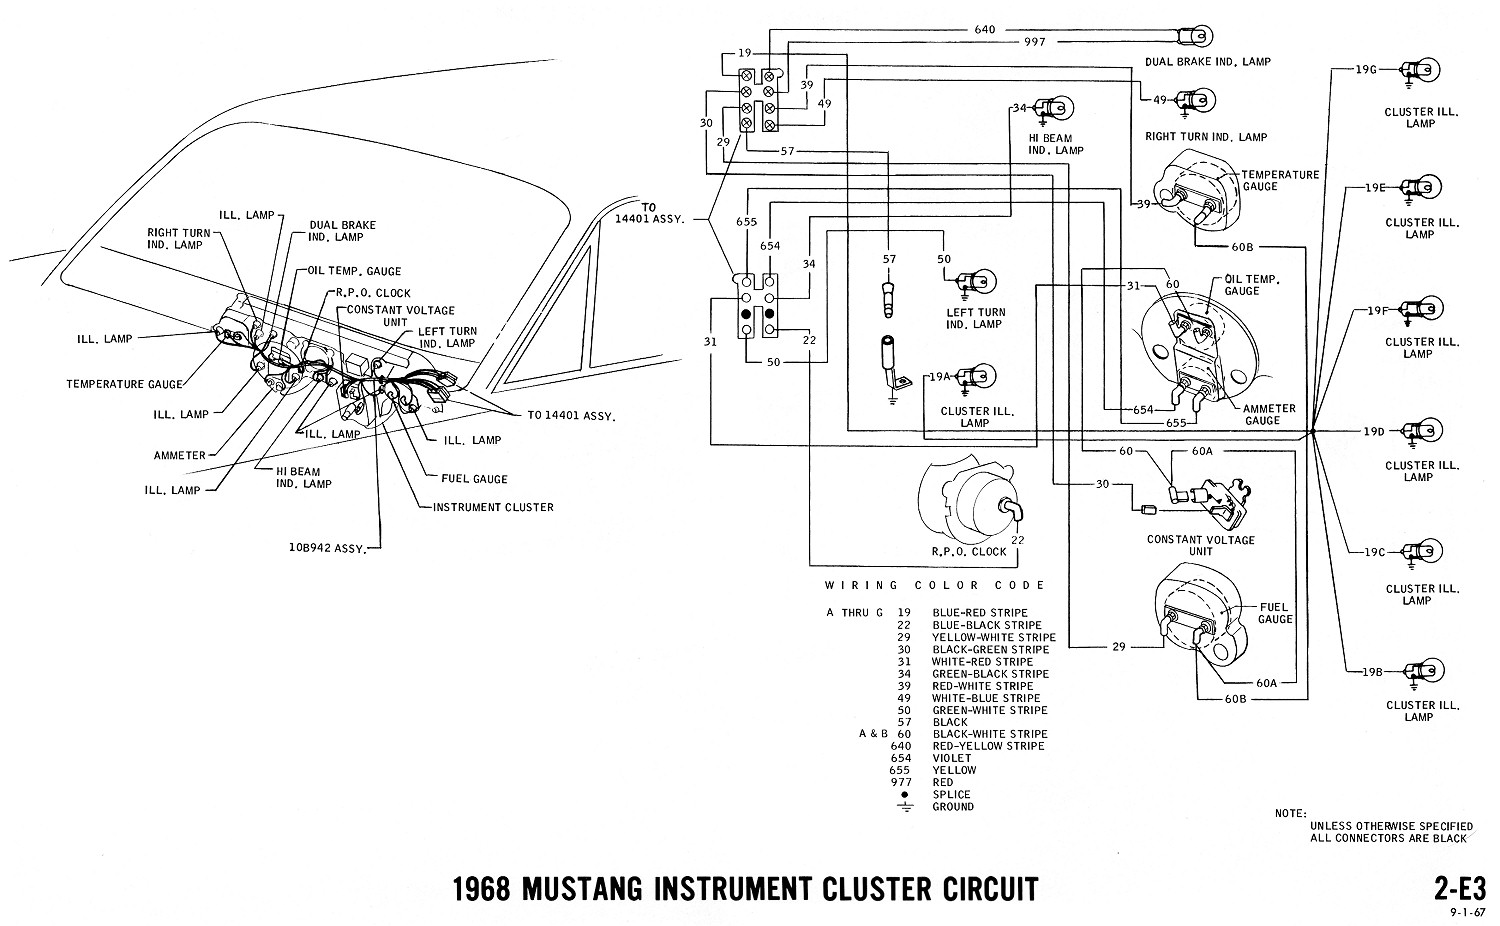 1968 Mustang Wiring Diagrams Evolving Software Wire Schematics For Dummies Instrument Cluster Clock Gauges